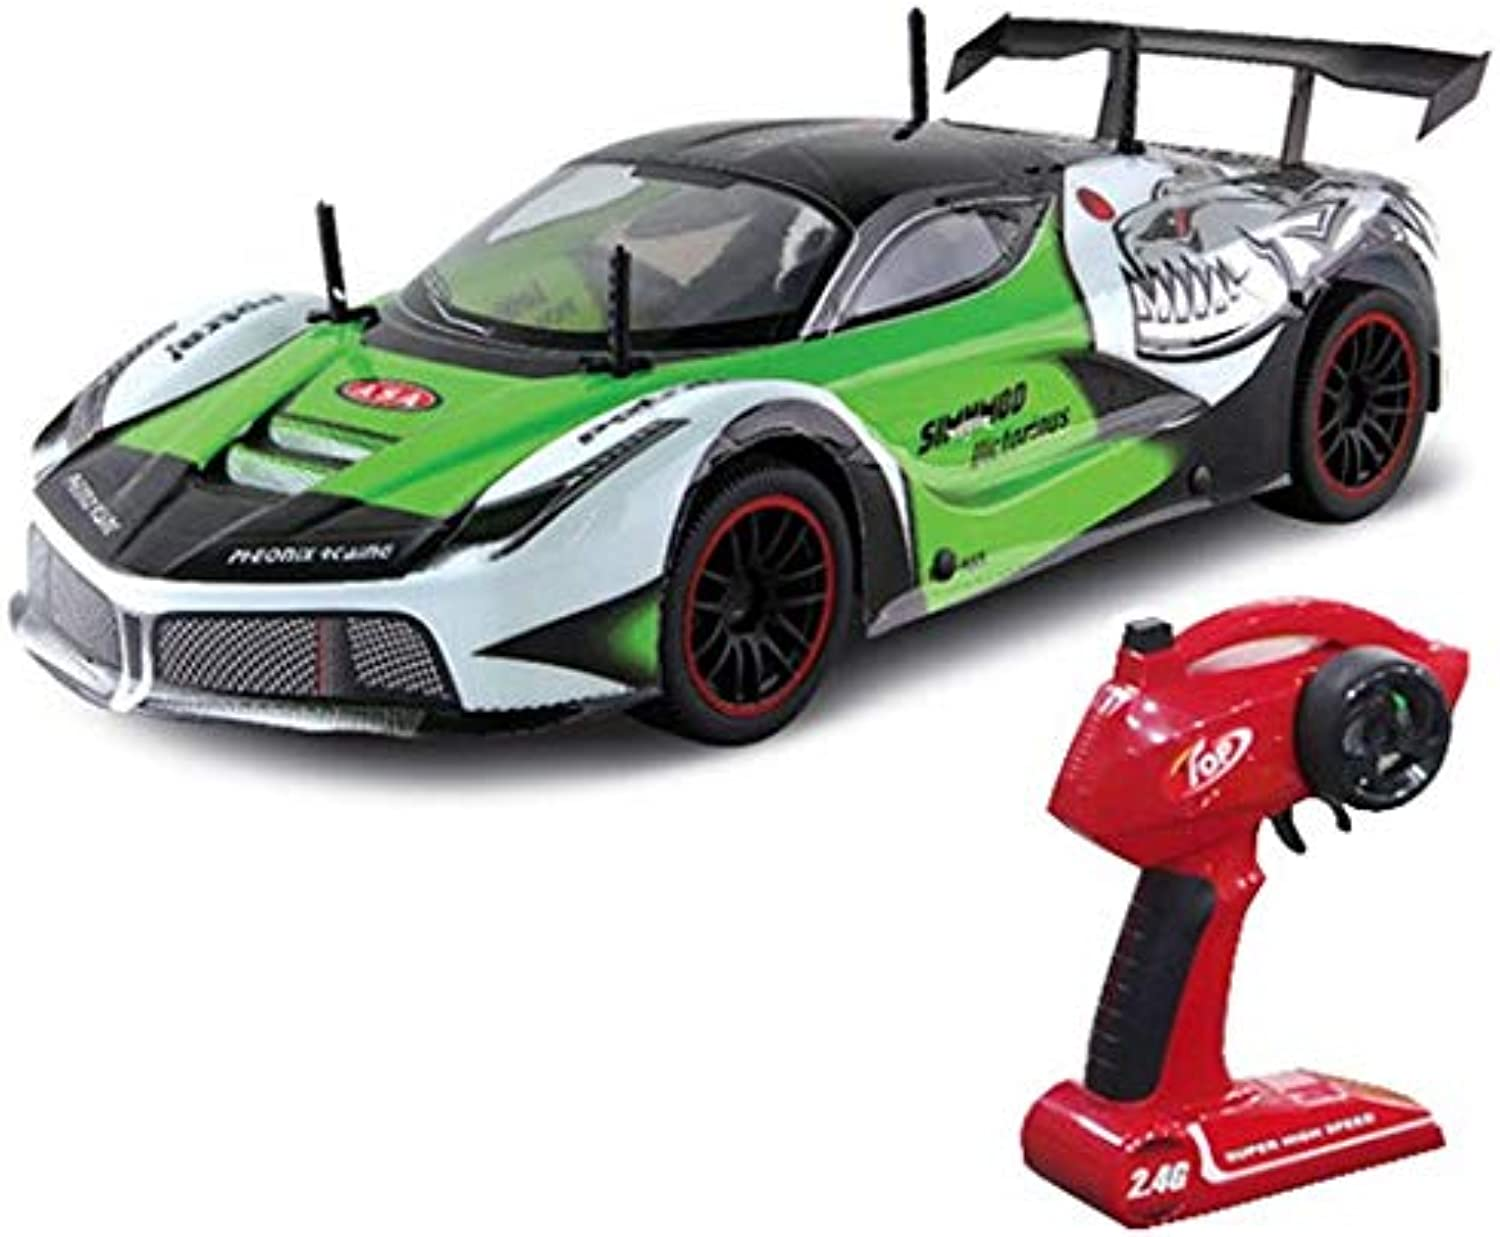 Generic RC Car High Speed Racing Drift Monster Truck Pickup GTR GT 2.4G Remote Control Vehicle Model Electric Toys Hobby Green